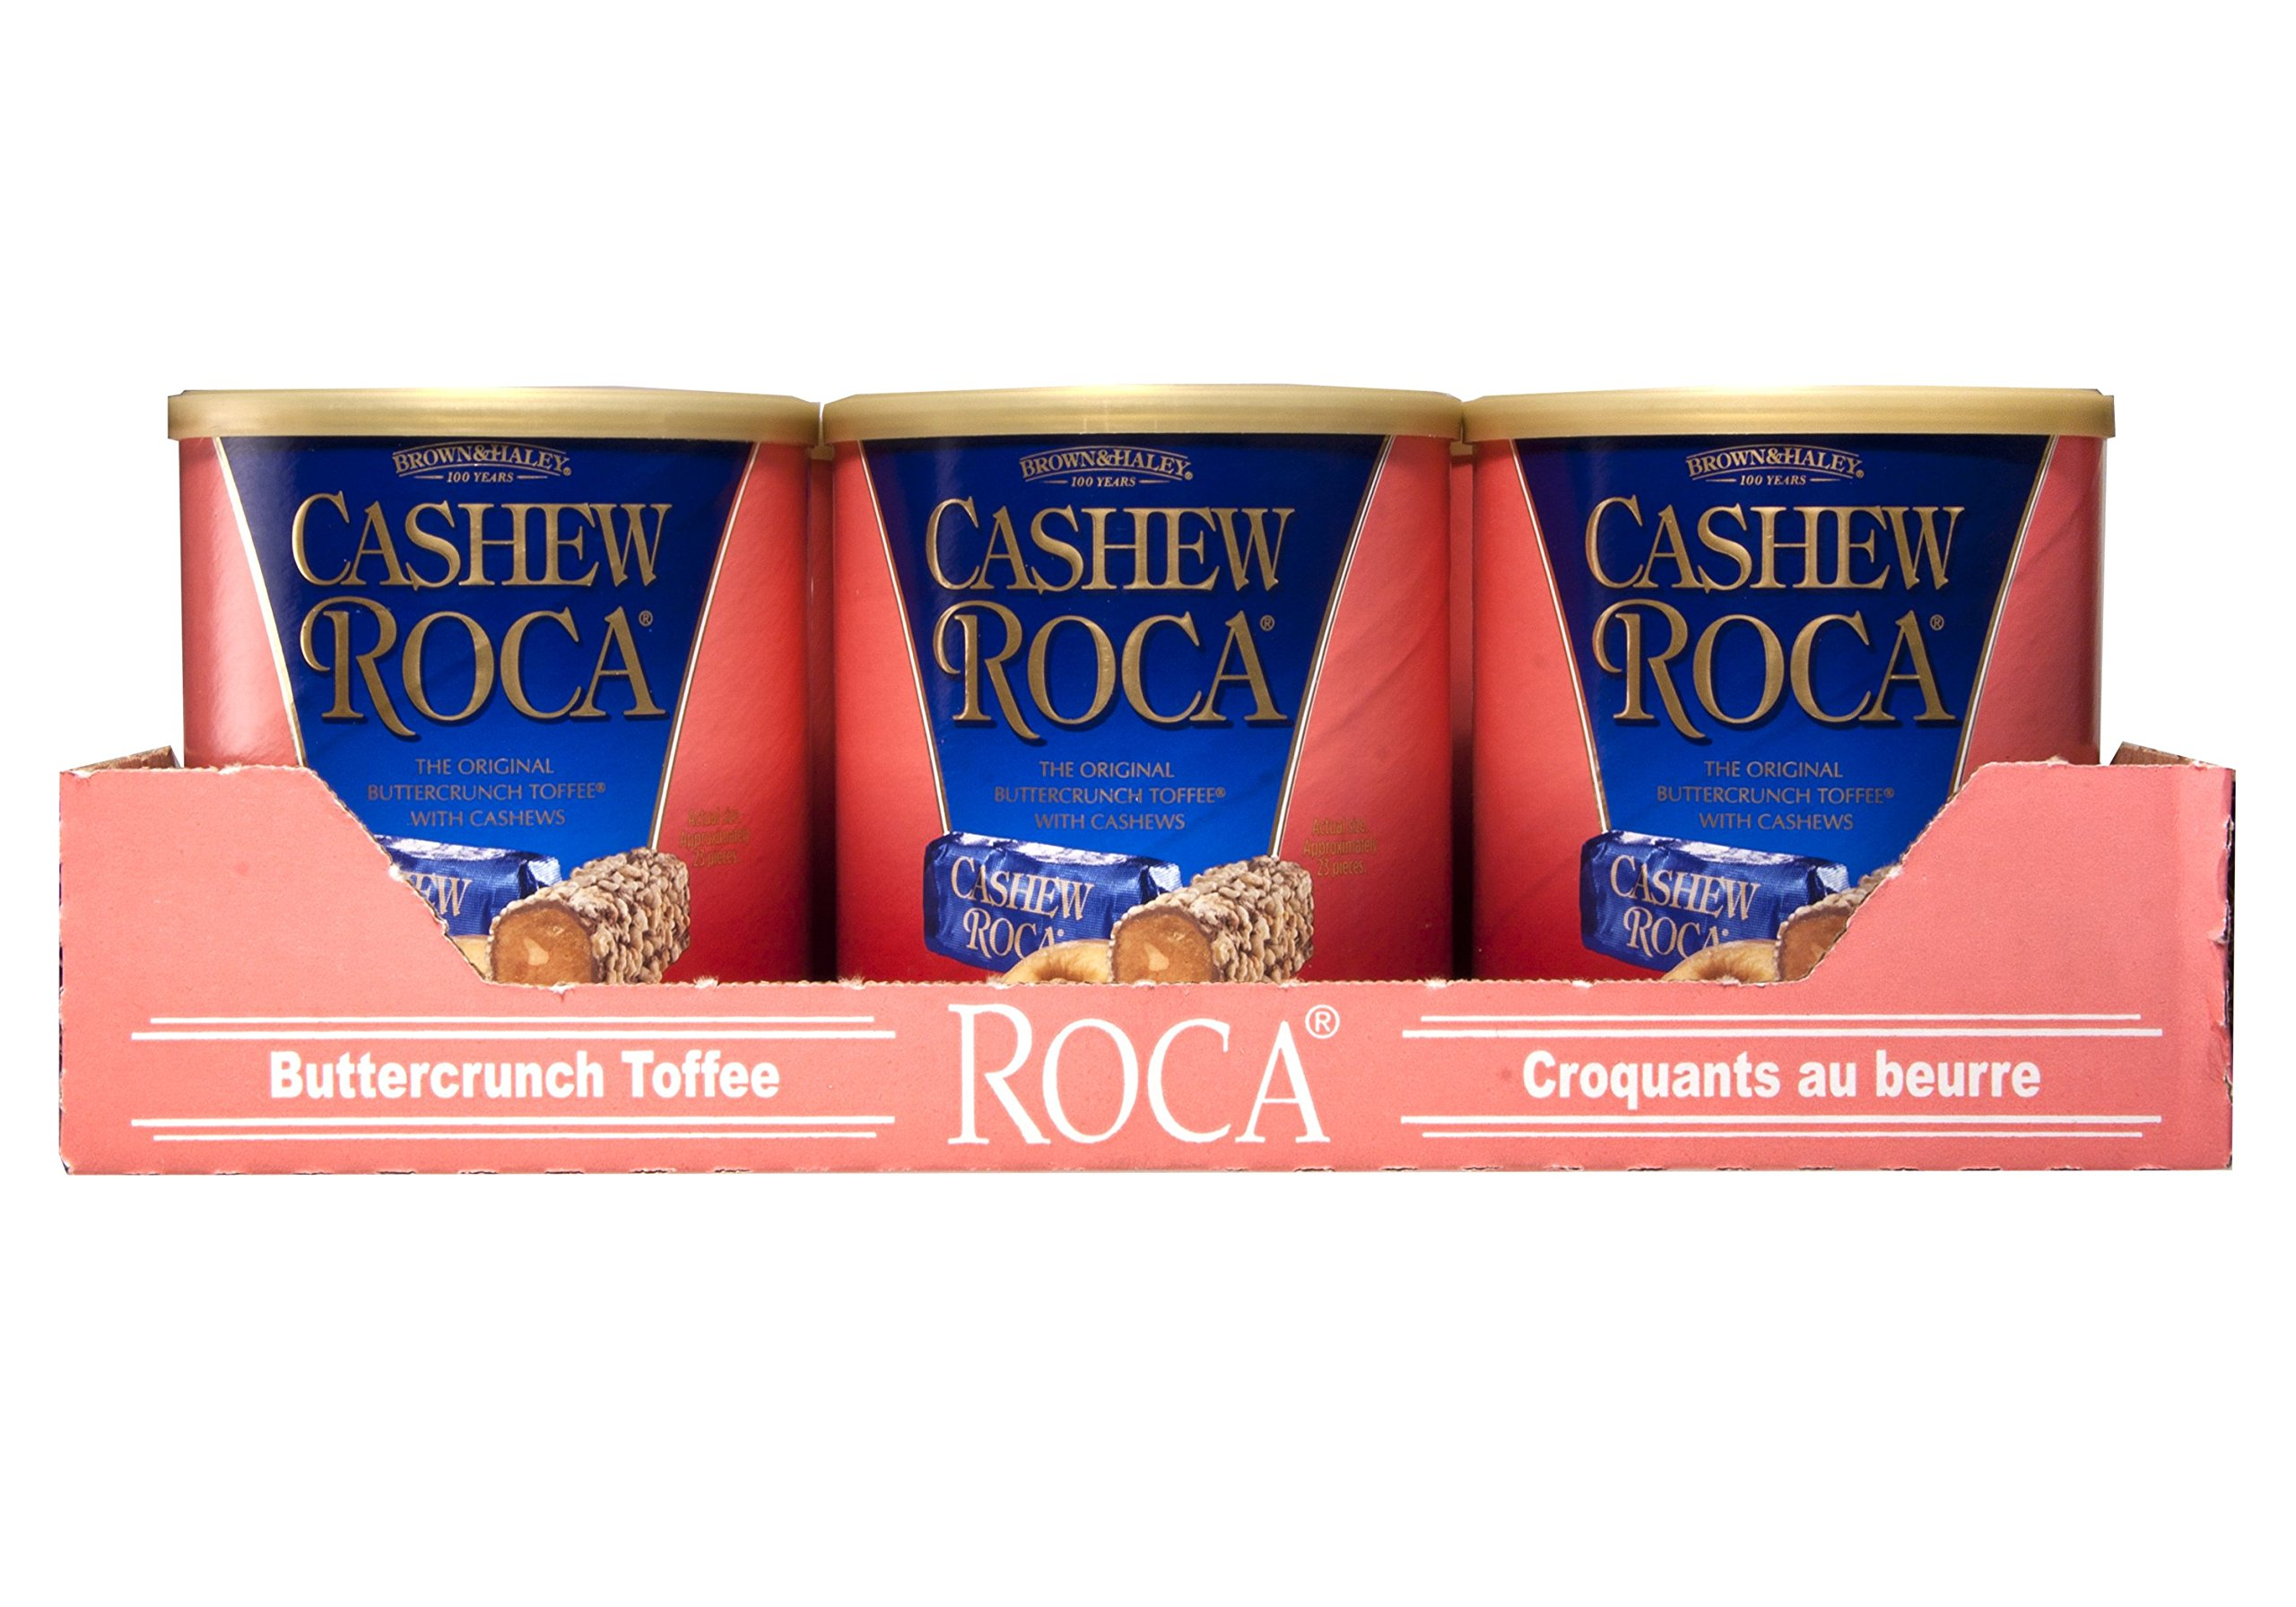 10 oz CASHEW ROCA Canister - Case of 9 Canisters by Roca